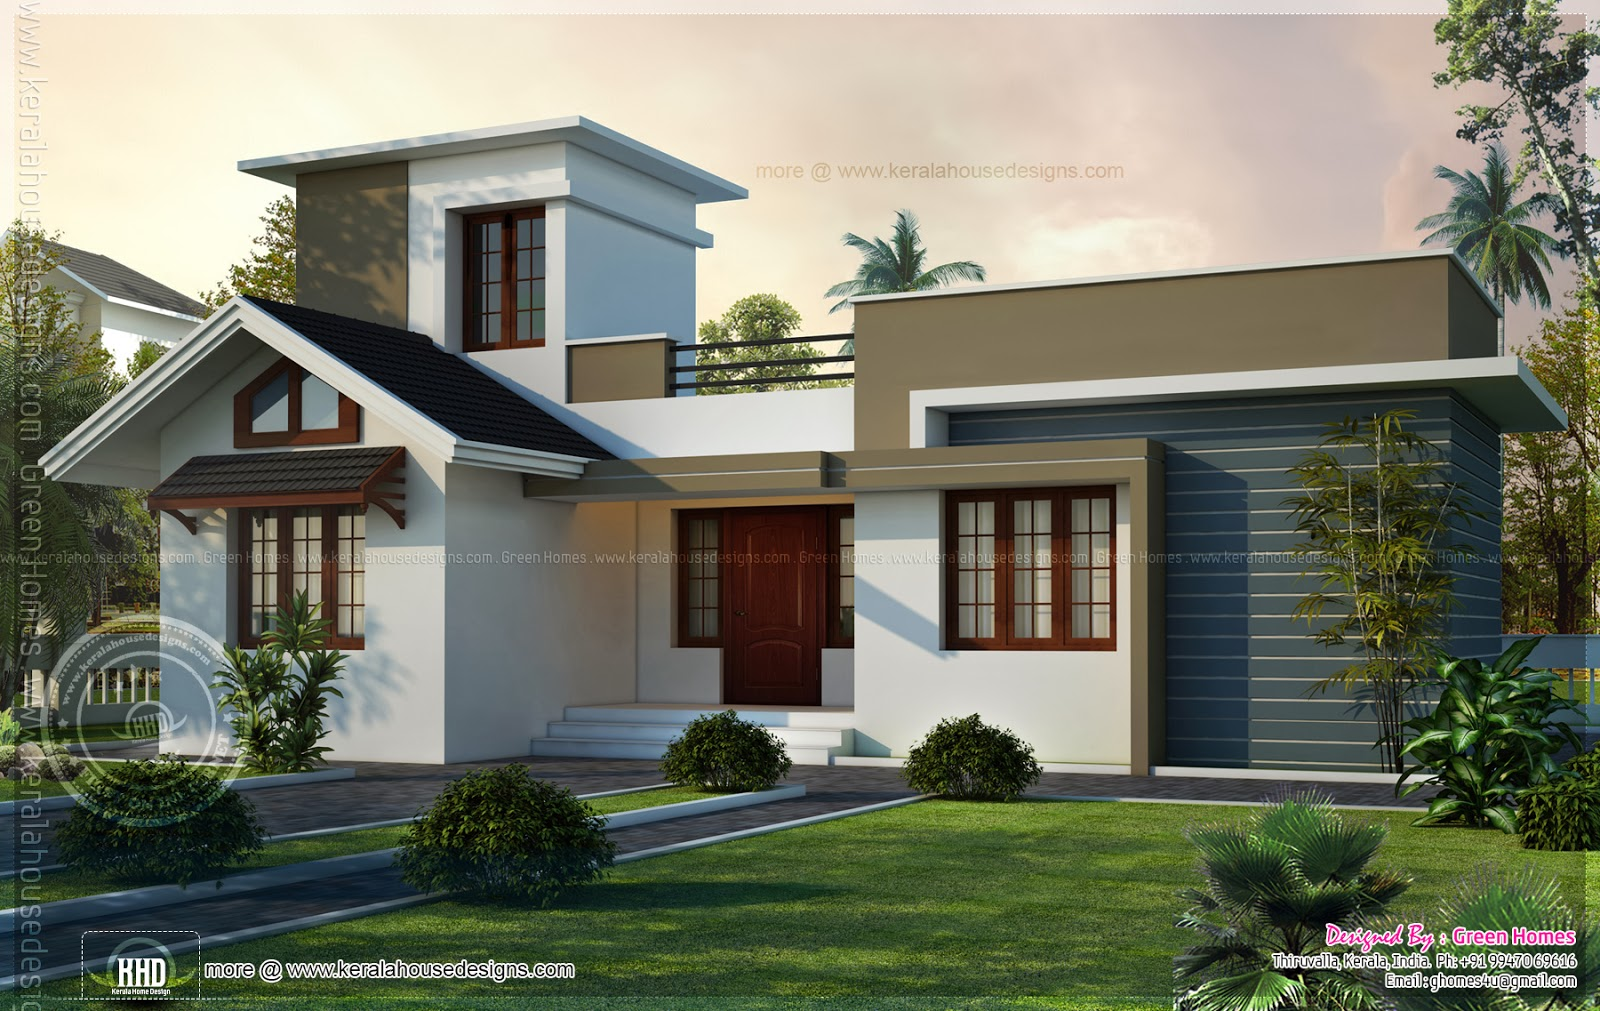 1000 square feet small house design kerala home design for Kerala model house plans 1000 sq ft